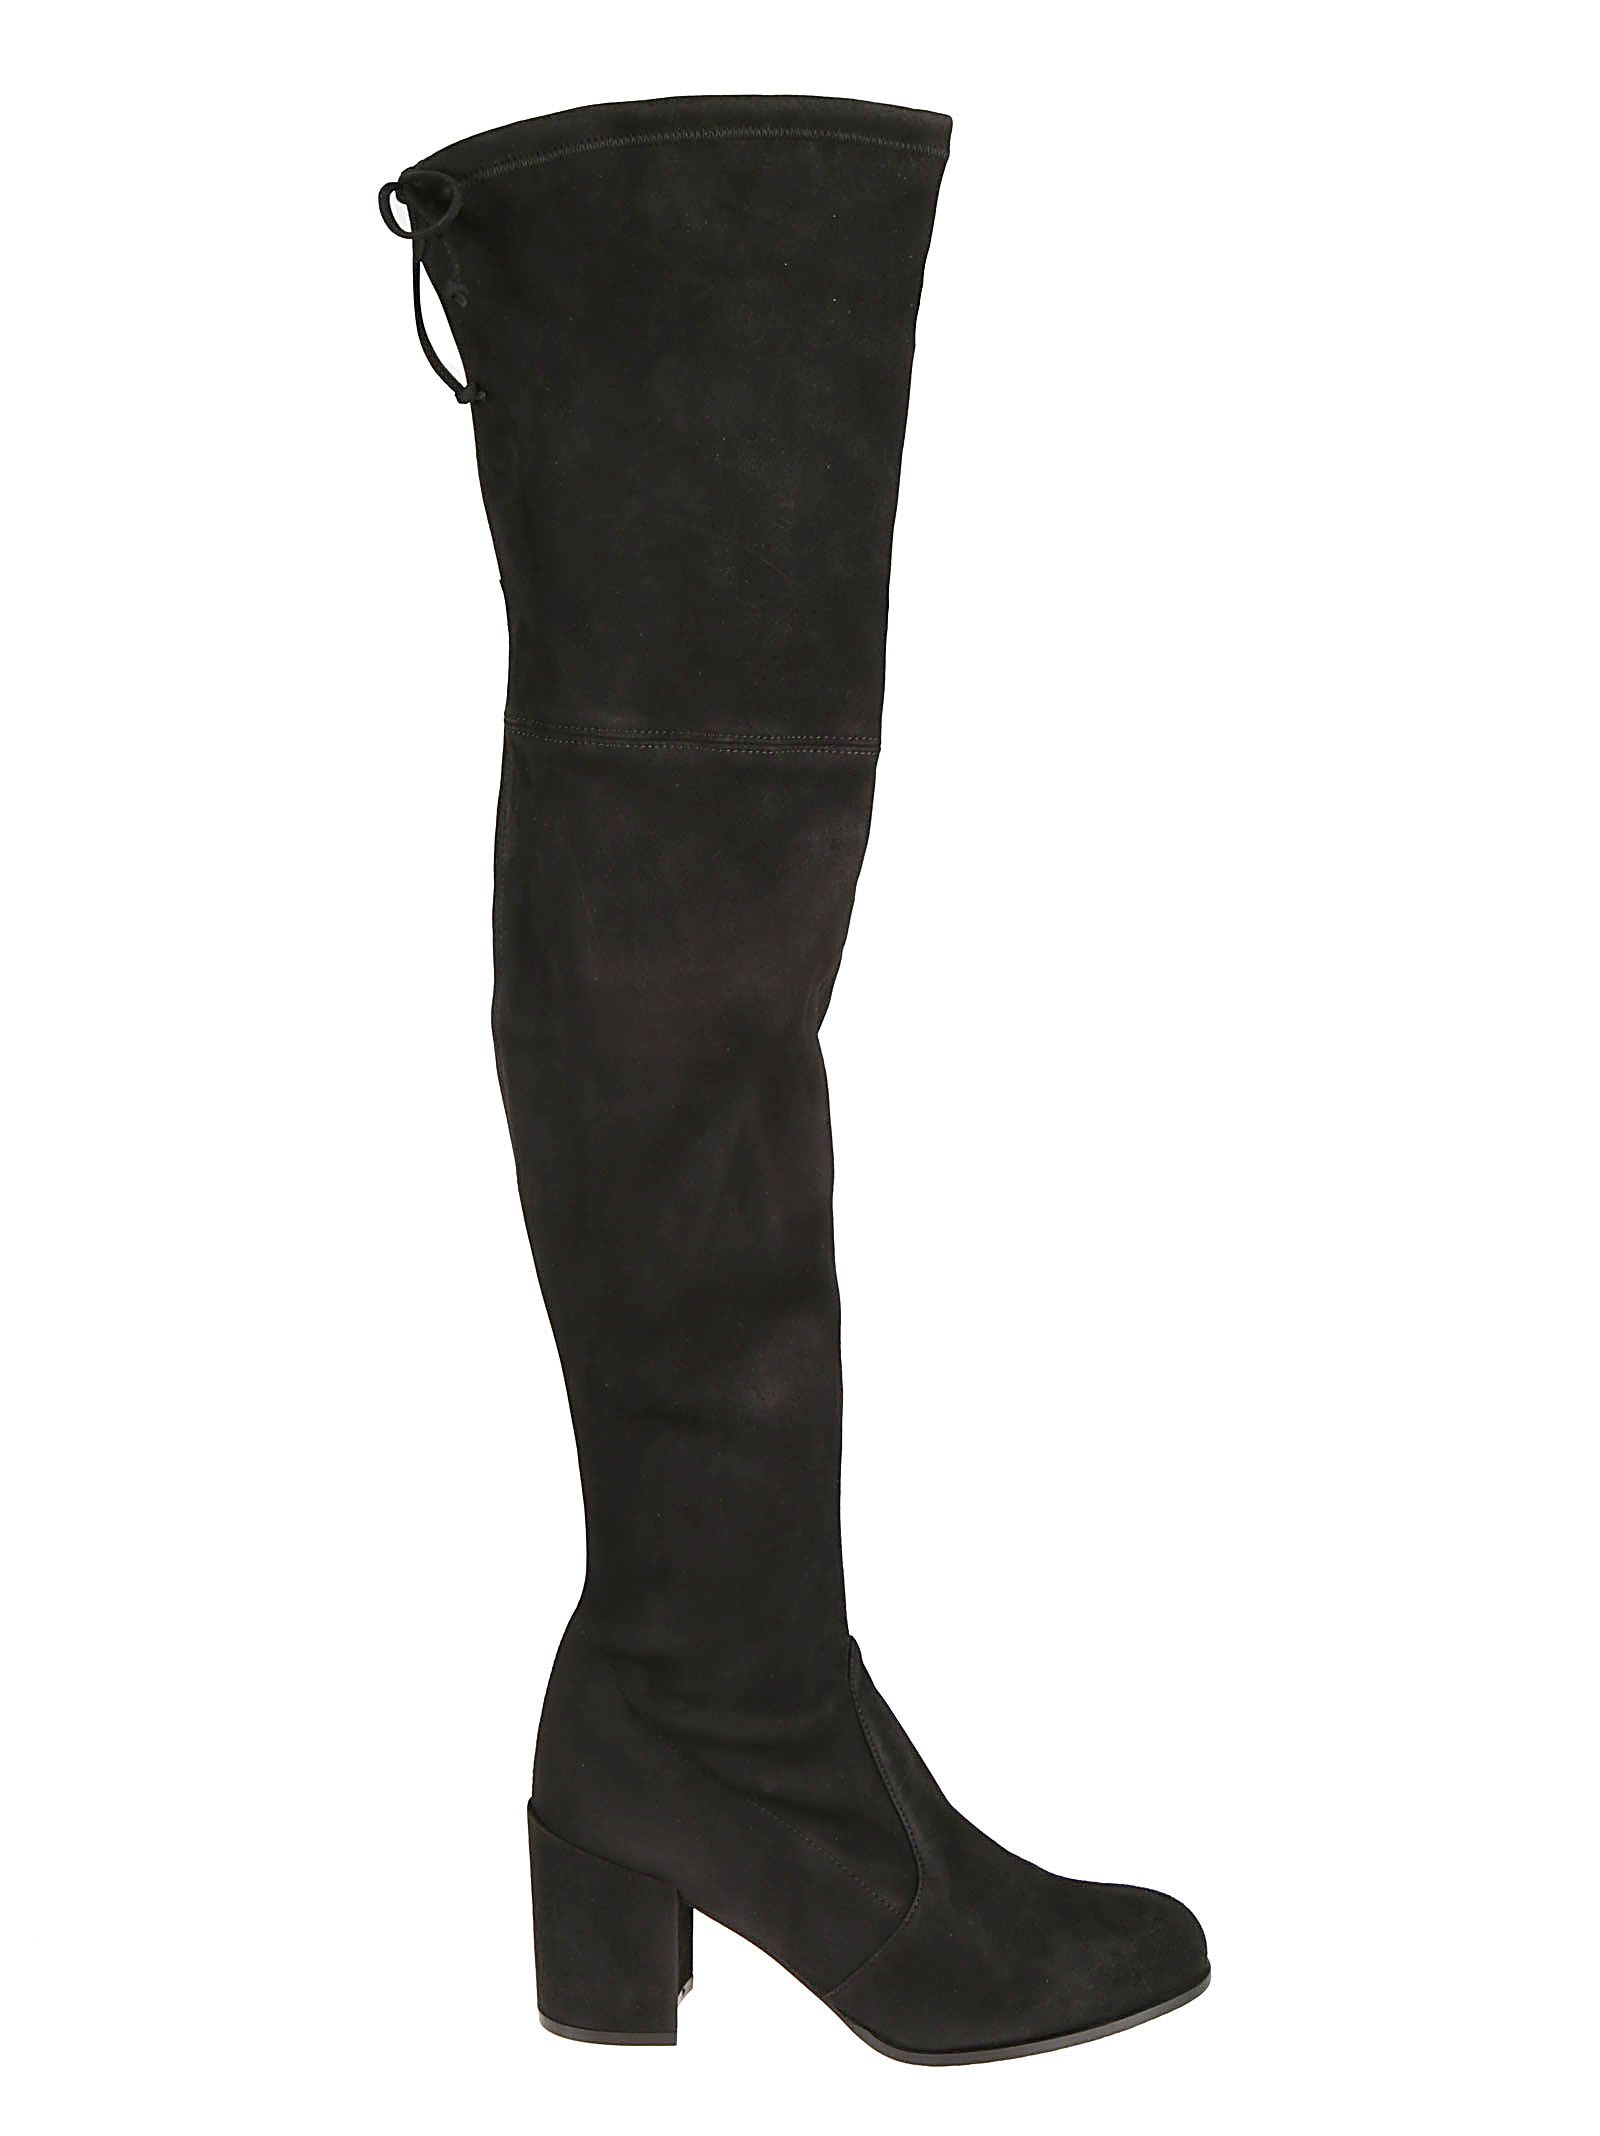 Tieland Over-The-Knee-Boots, Black